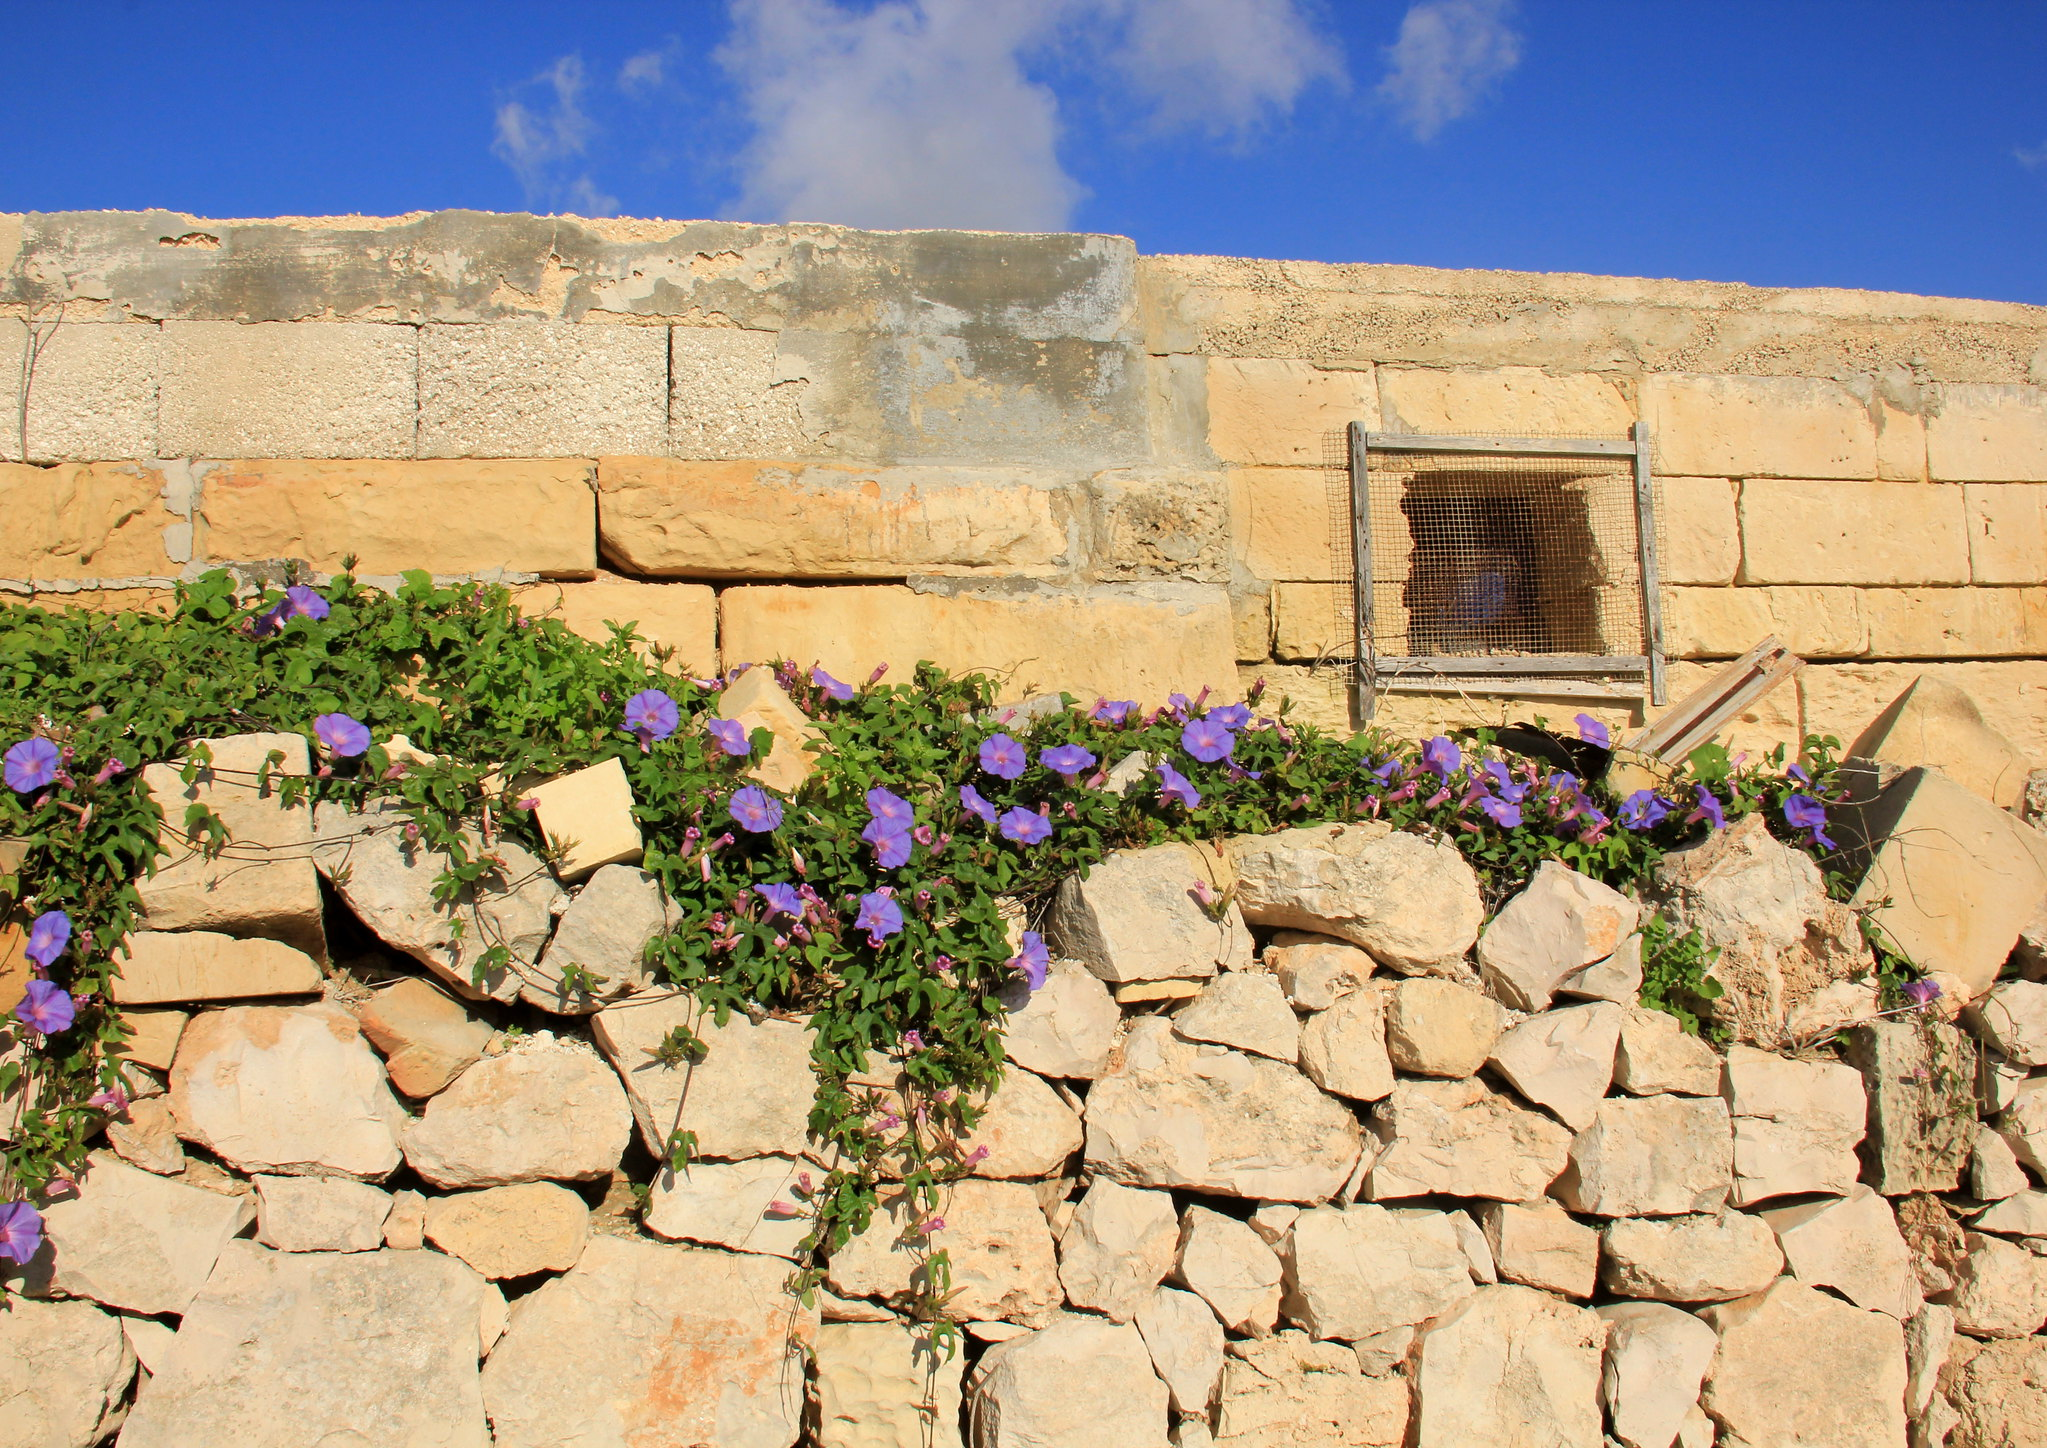 A little village homestay can be very relaxing when you visit Malta